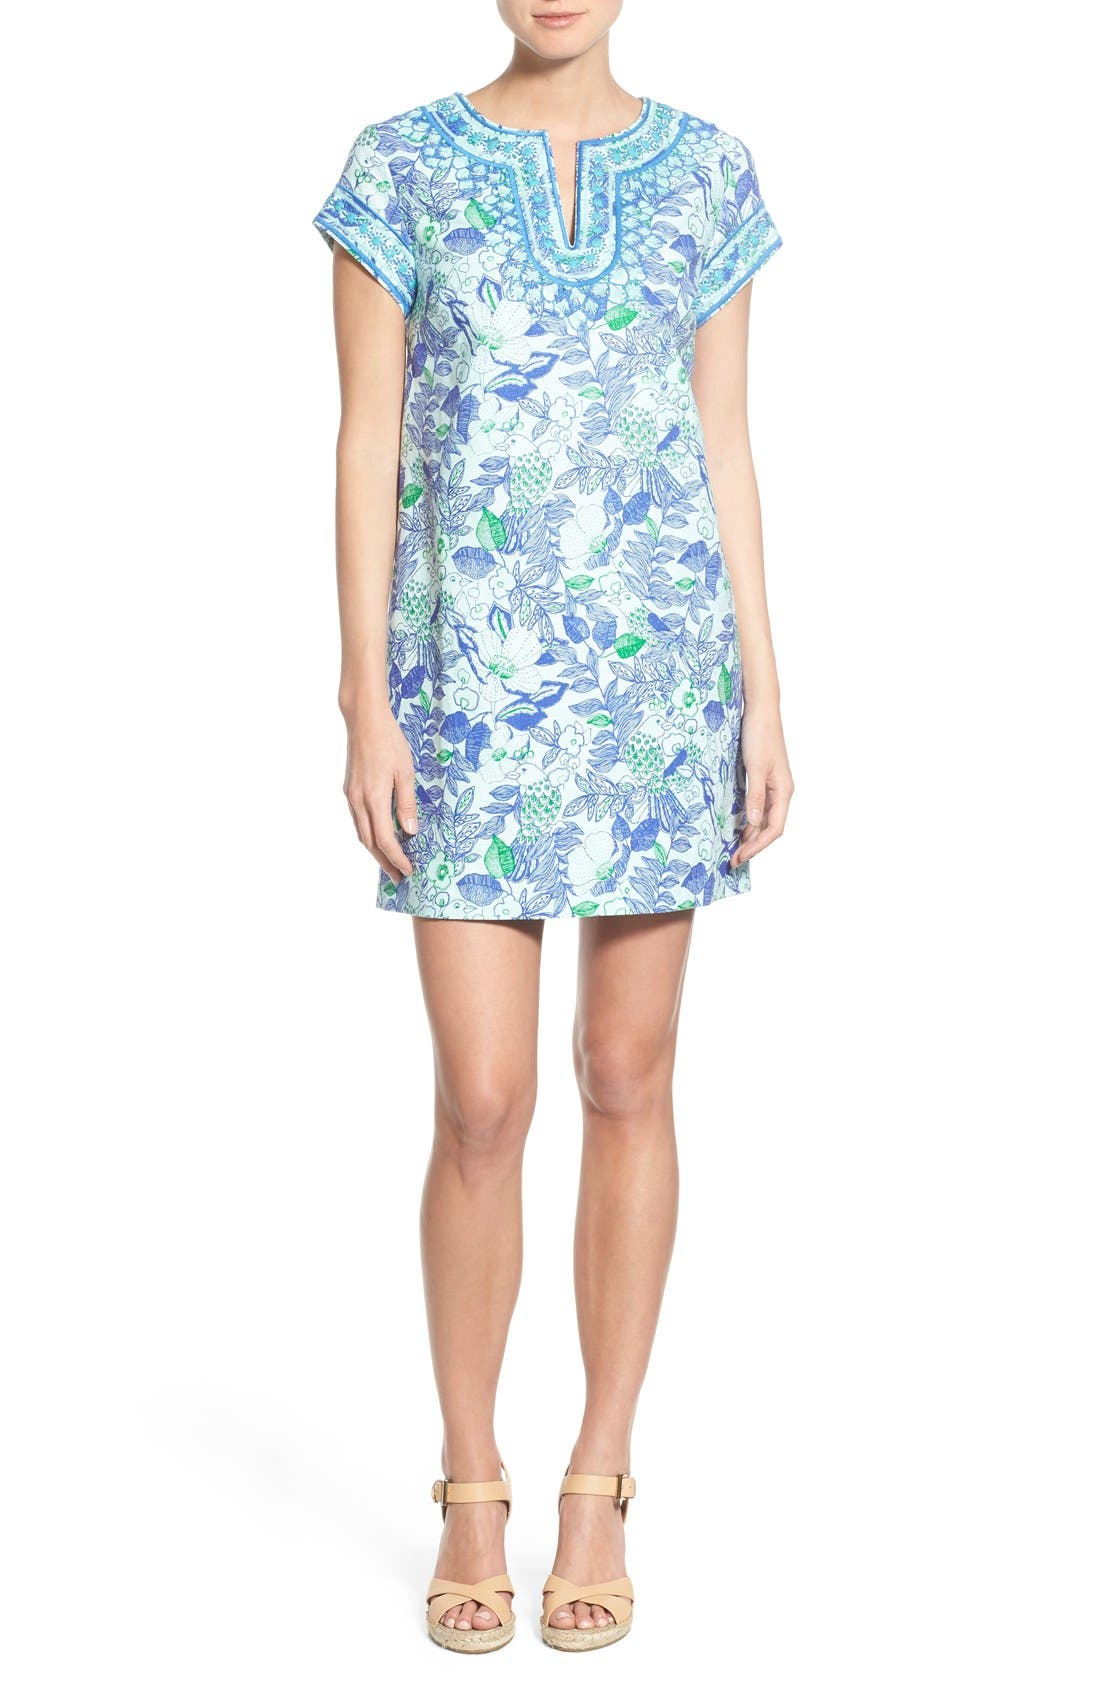 Main Image - Vineyard Vines 'Cordia' Floral Print Tunic Dress